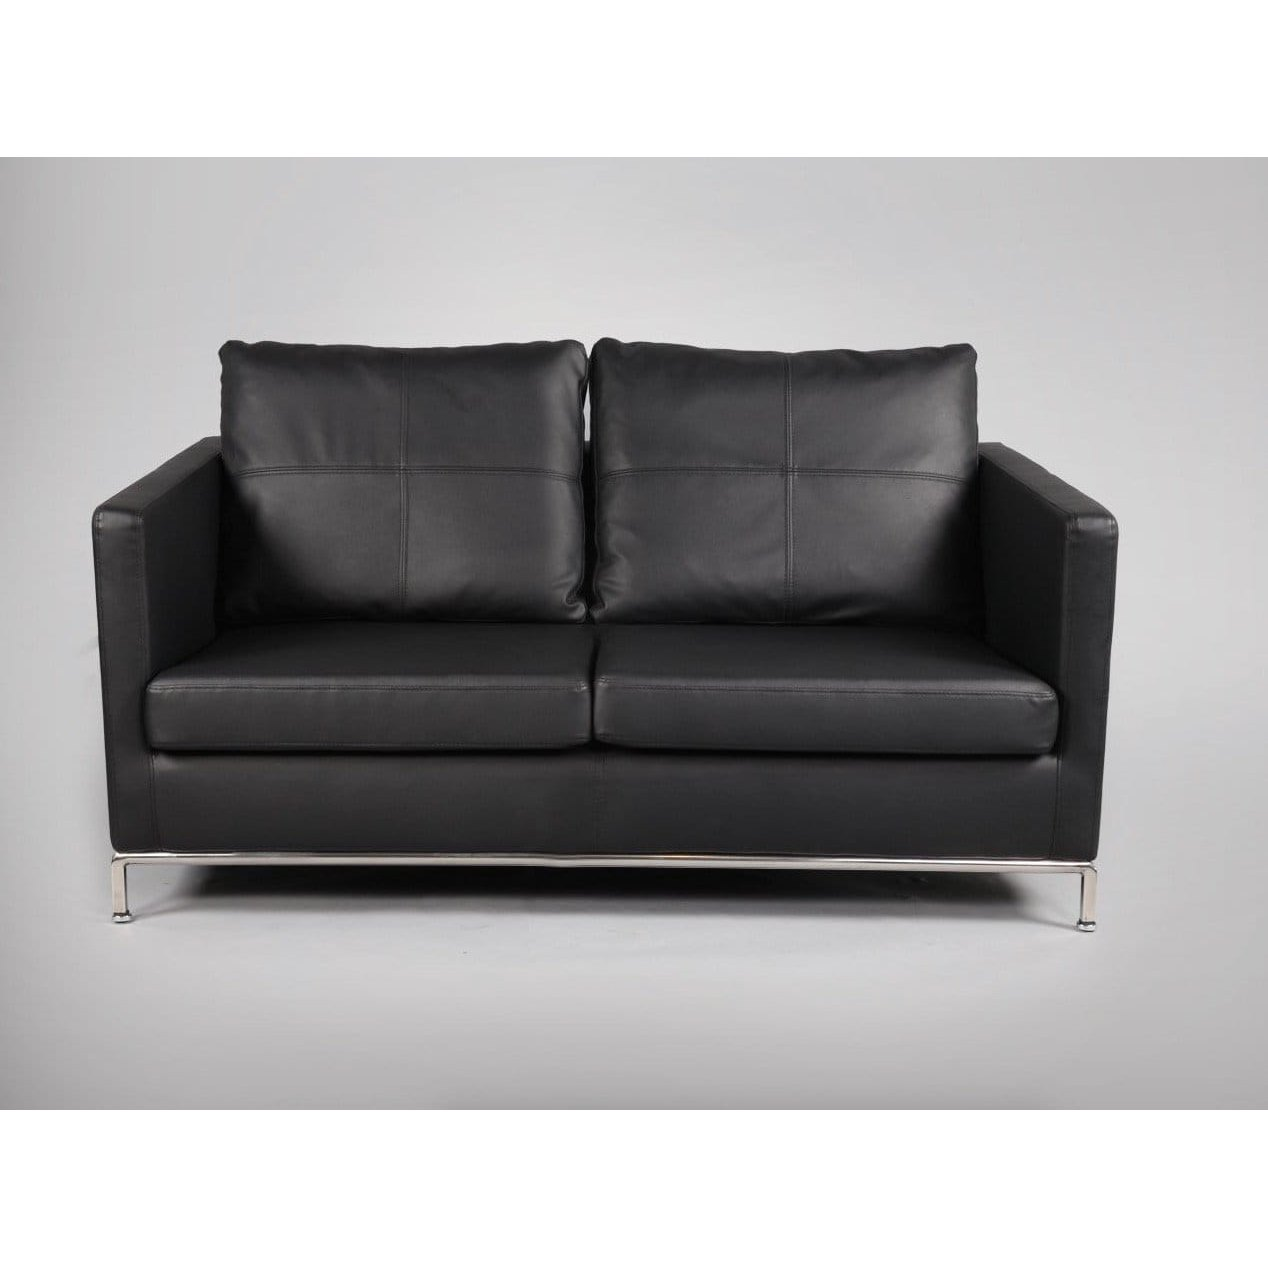 Gunther 2 Seater Sofa Comfort Design The Chair Amp Table